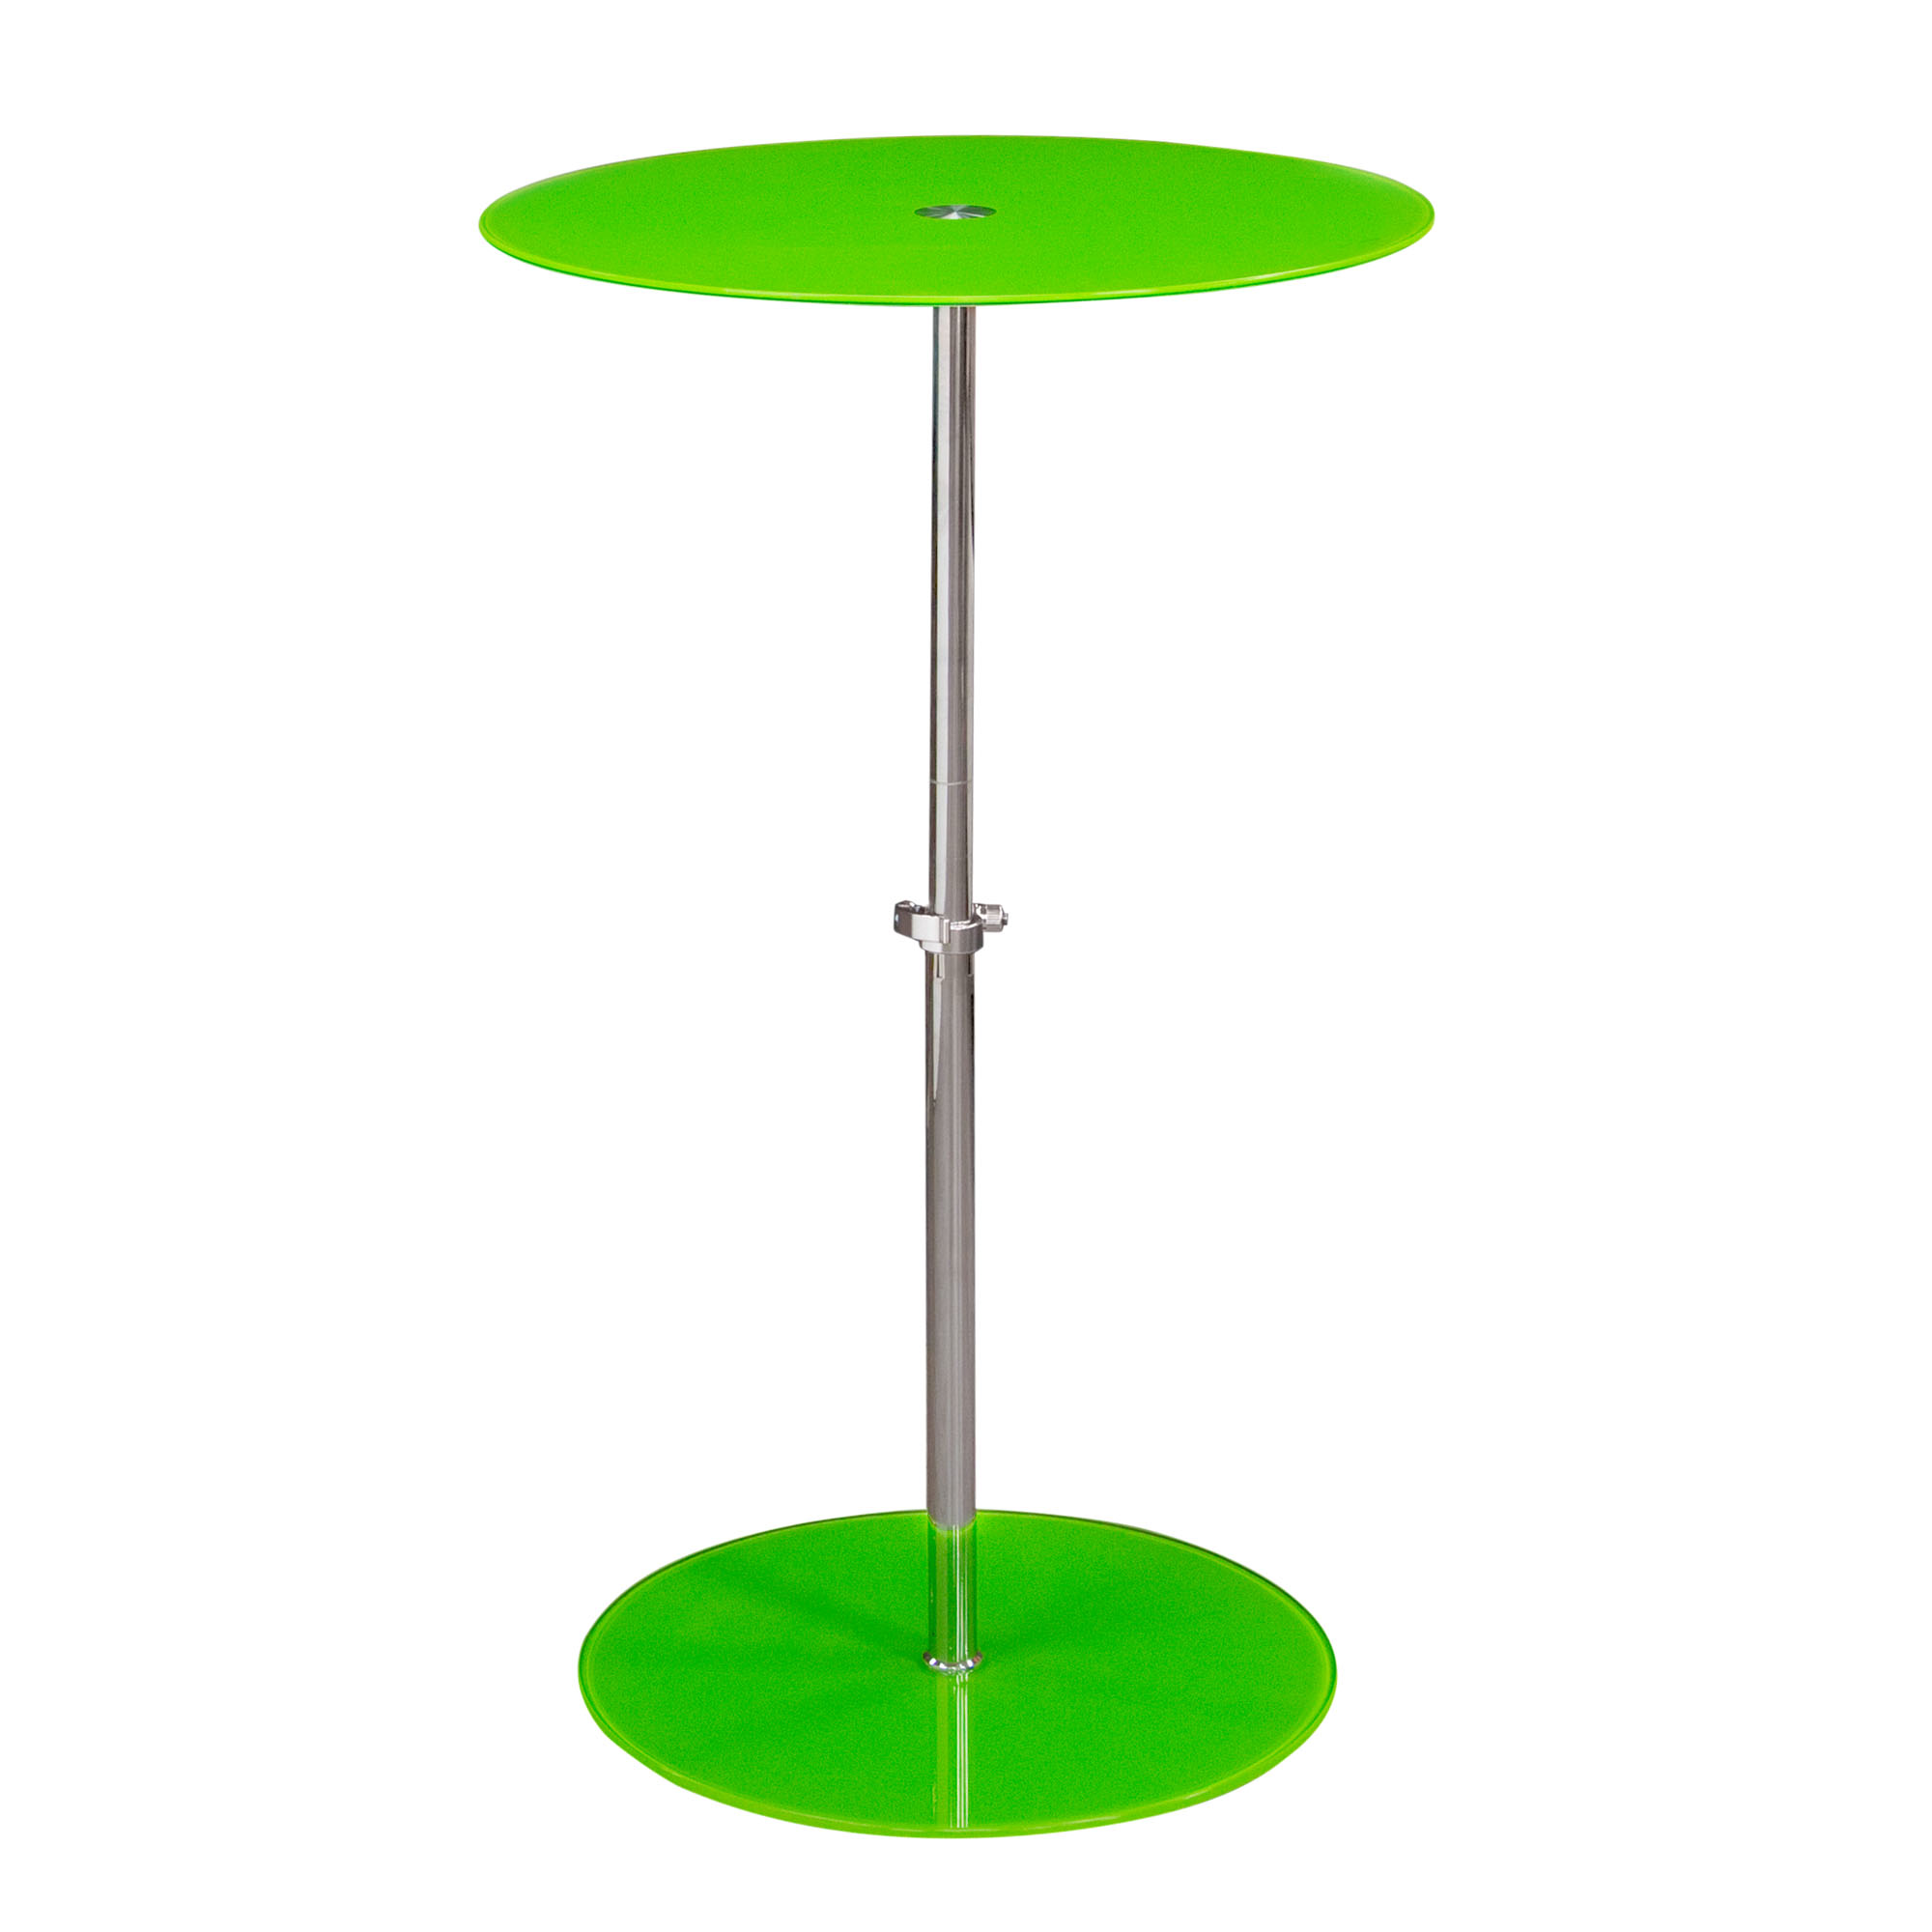 orbit adjustable height glass accent table green big orbitetgn metal home nautical themed lighting unique mirrors grill cover coffee tables and round wood end small half circle